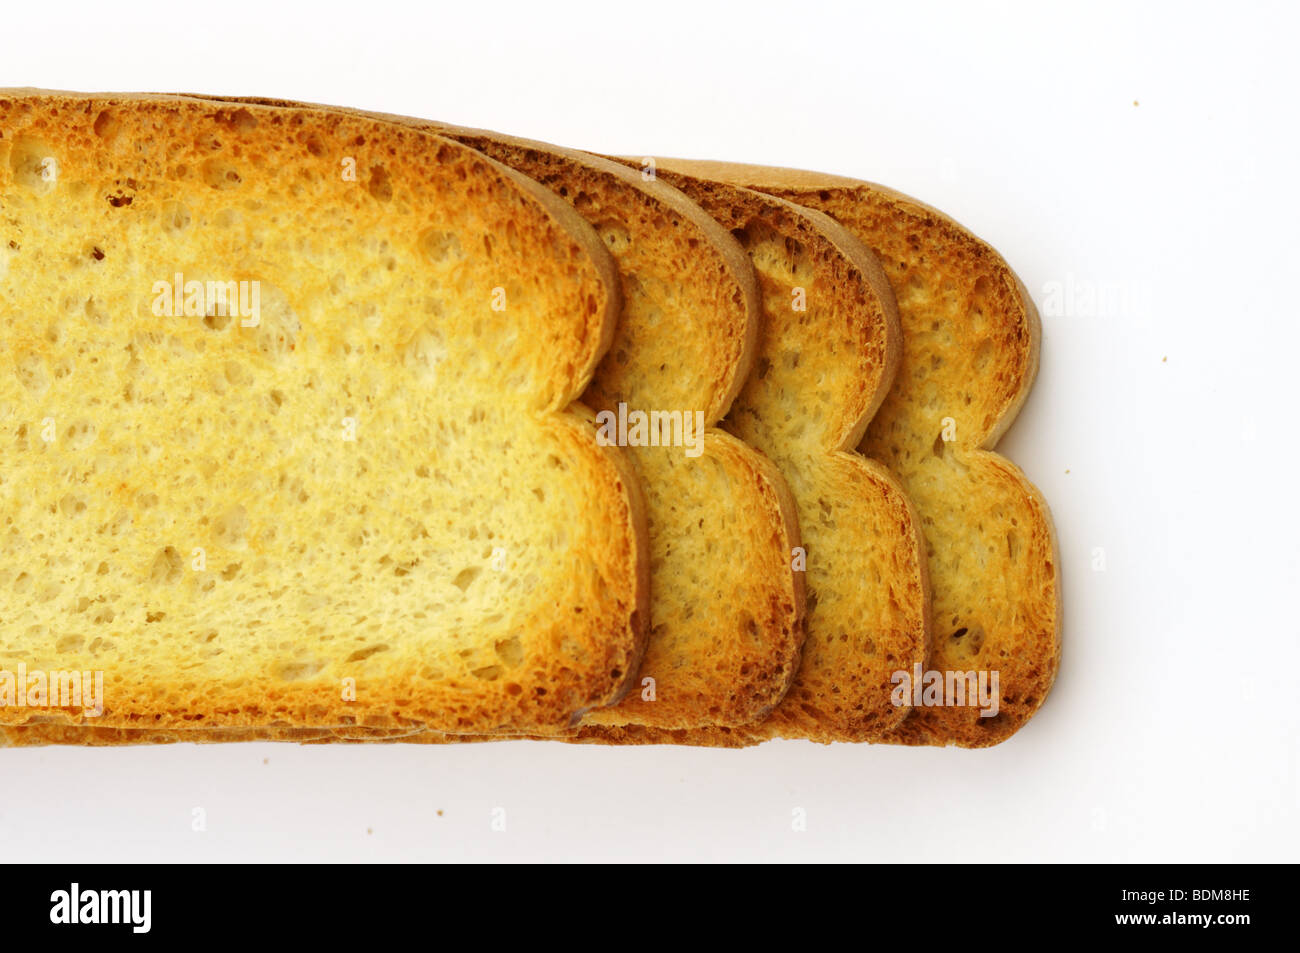 Dried grilled sliced bread. - Stock Image